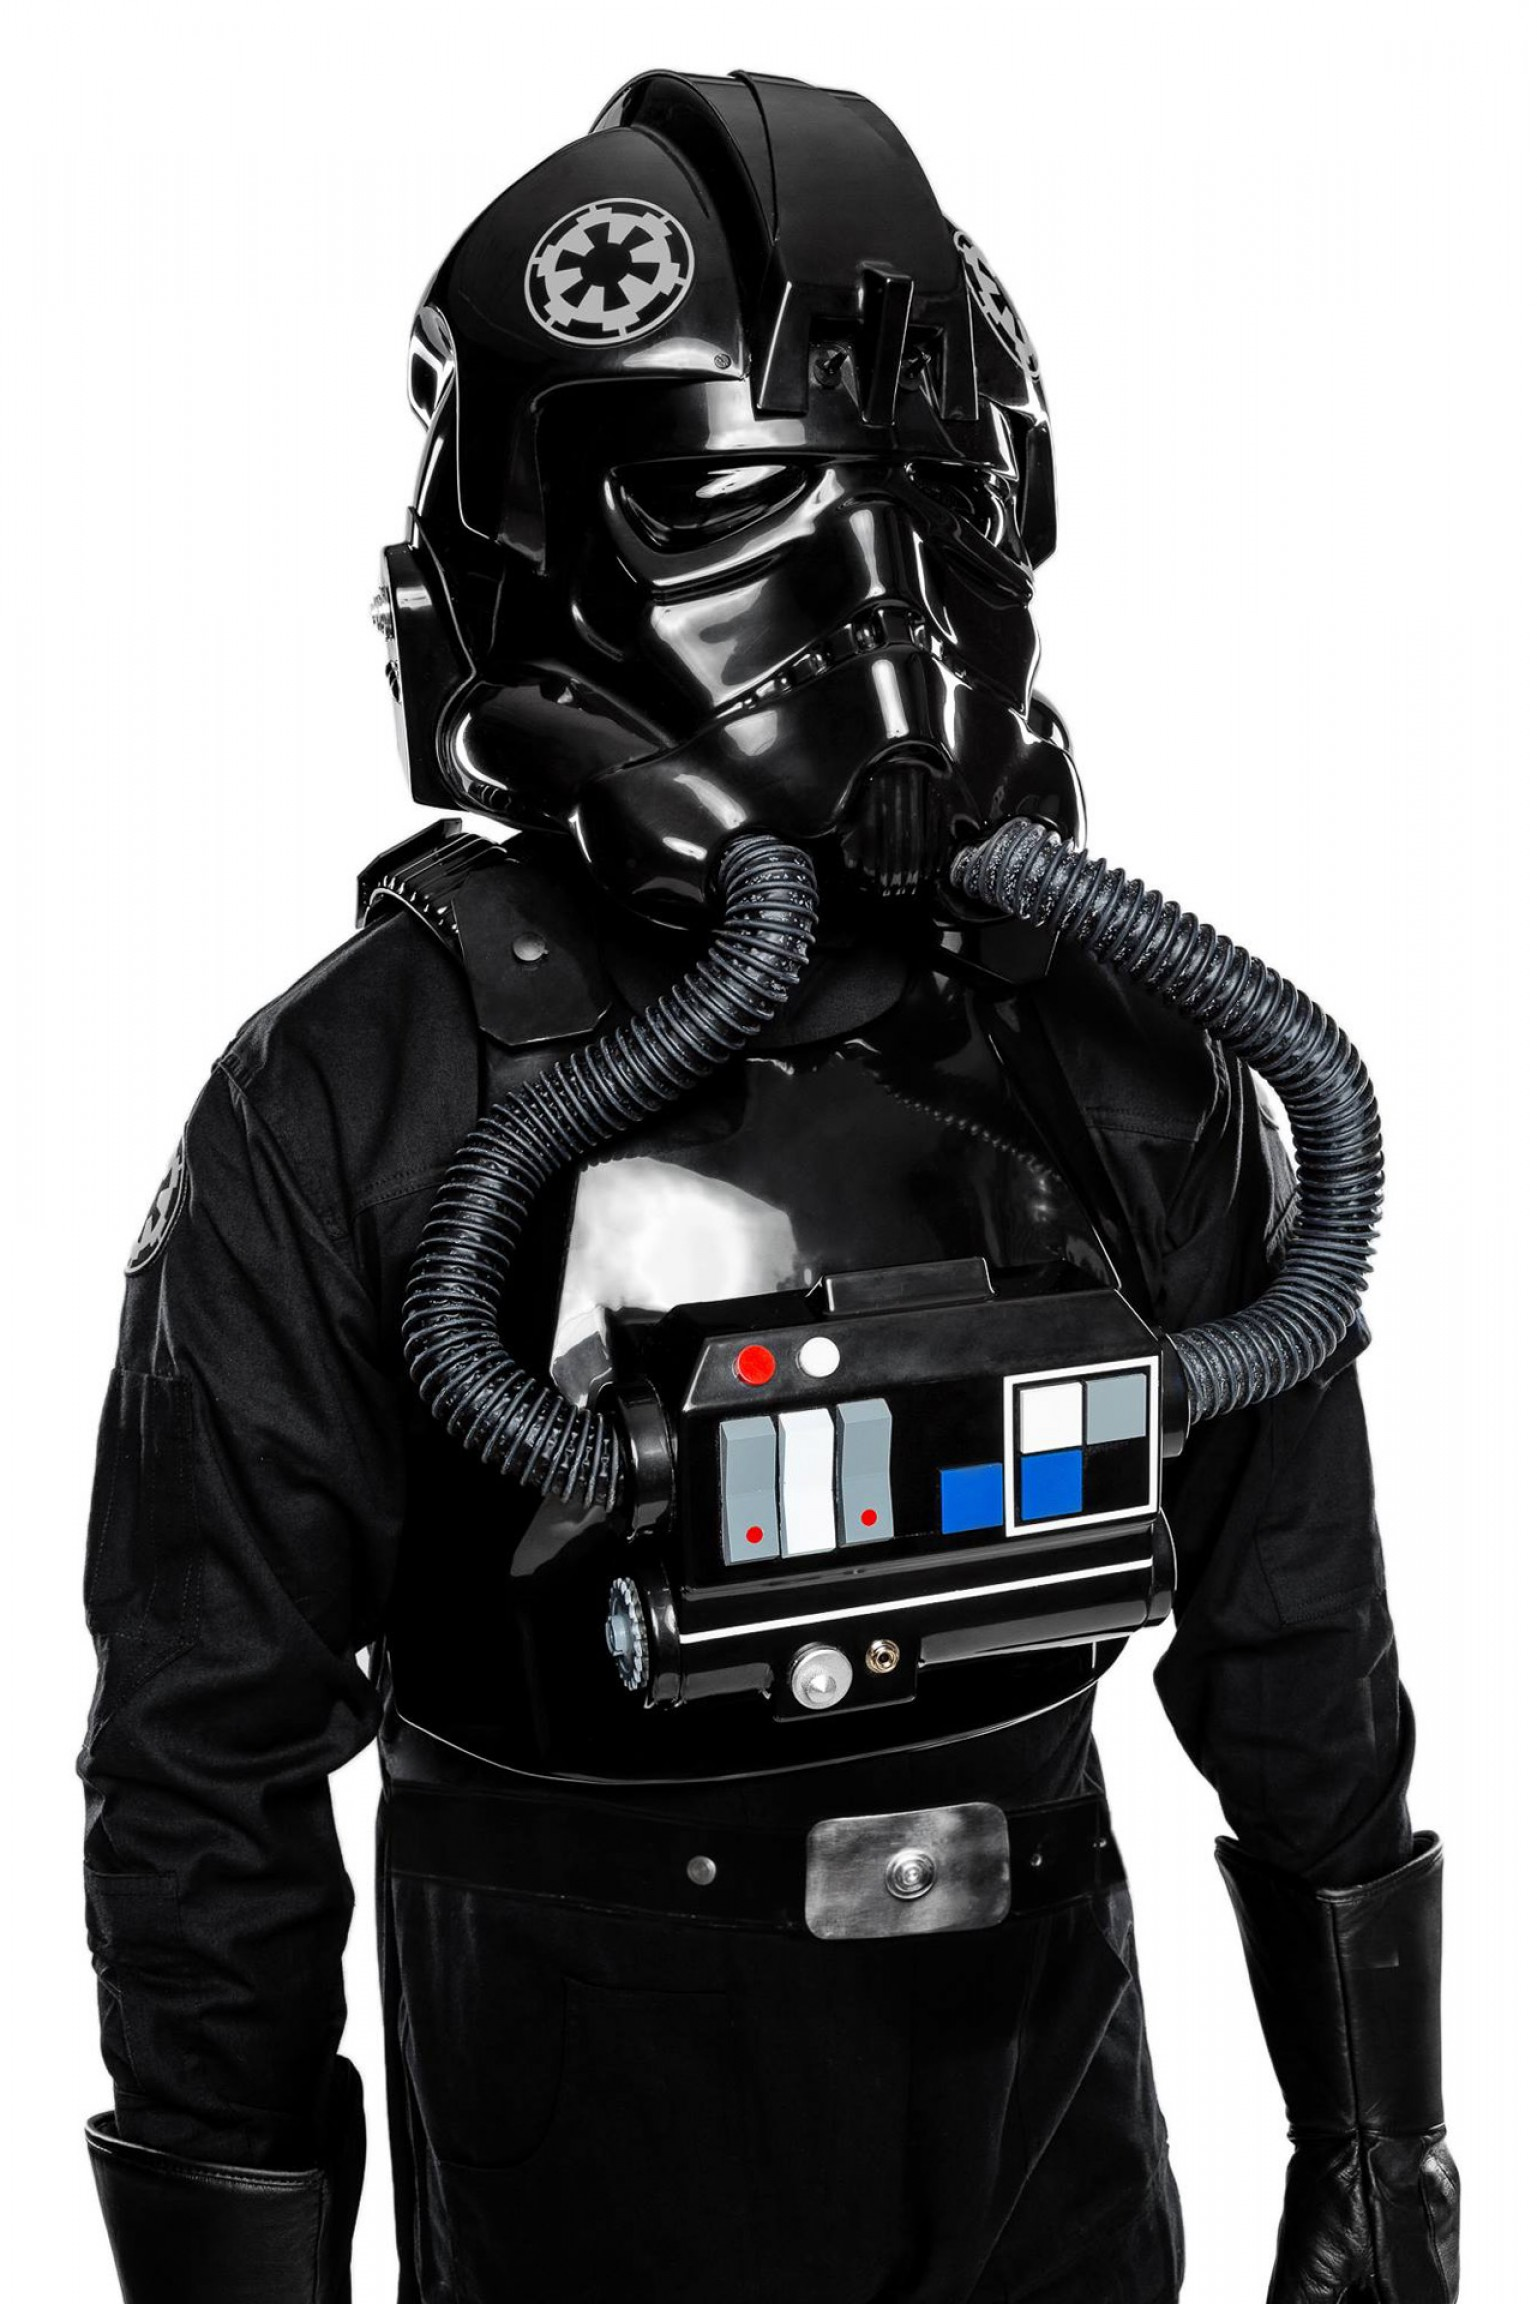 Vector Cosplay: Anovos Tie Fighter Pilot Costume And Darth Vader Helmet First Look